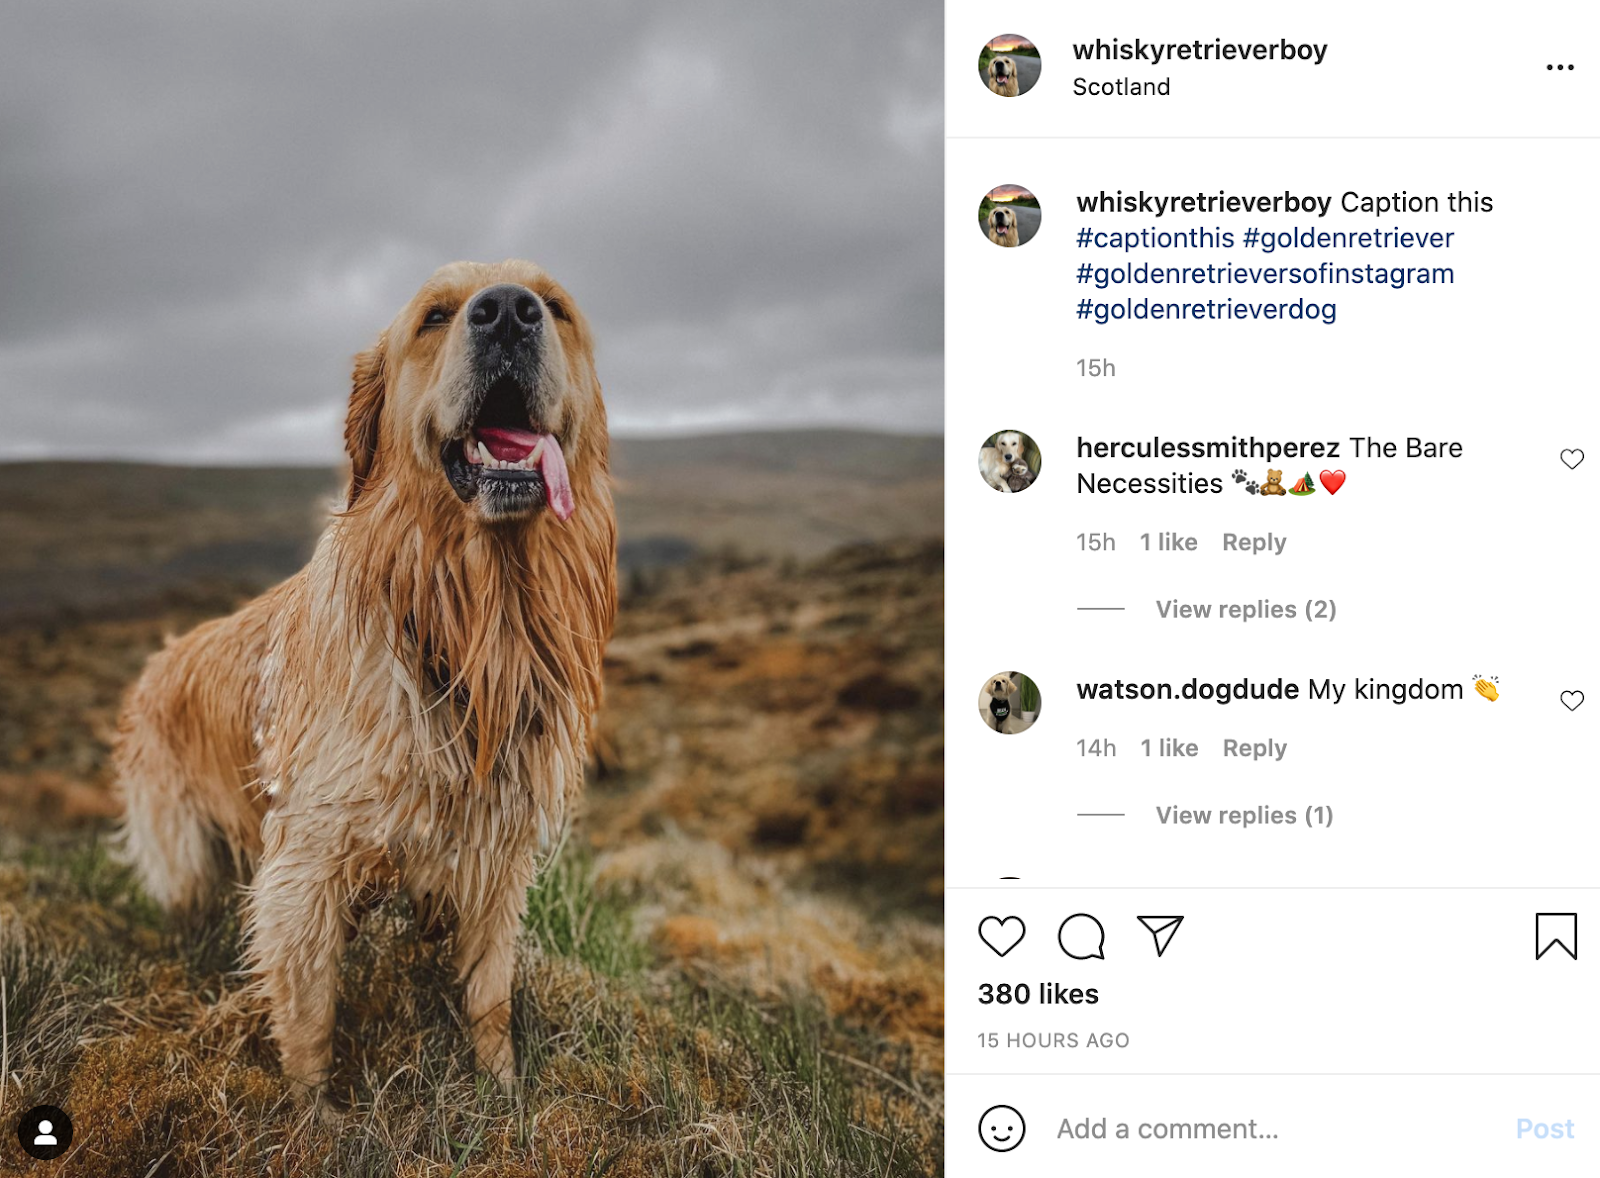 instagram captions to get more comments